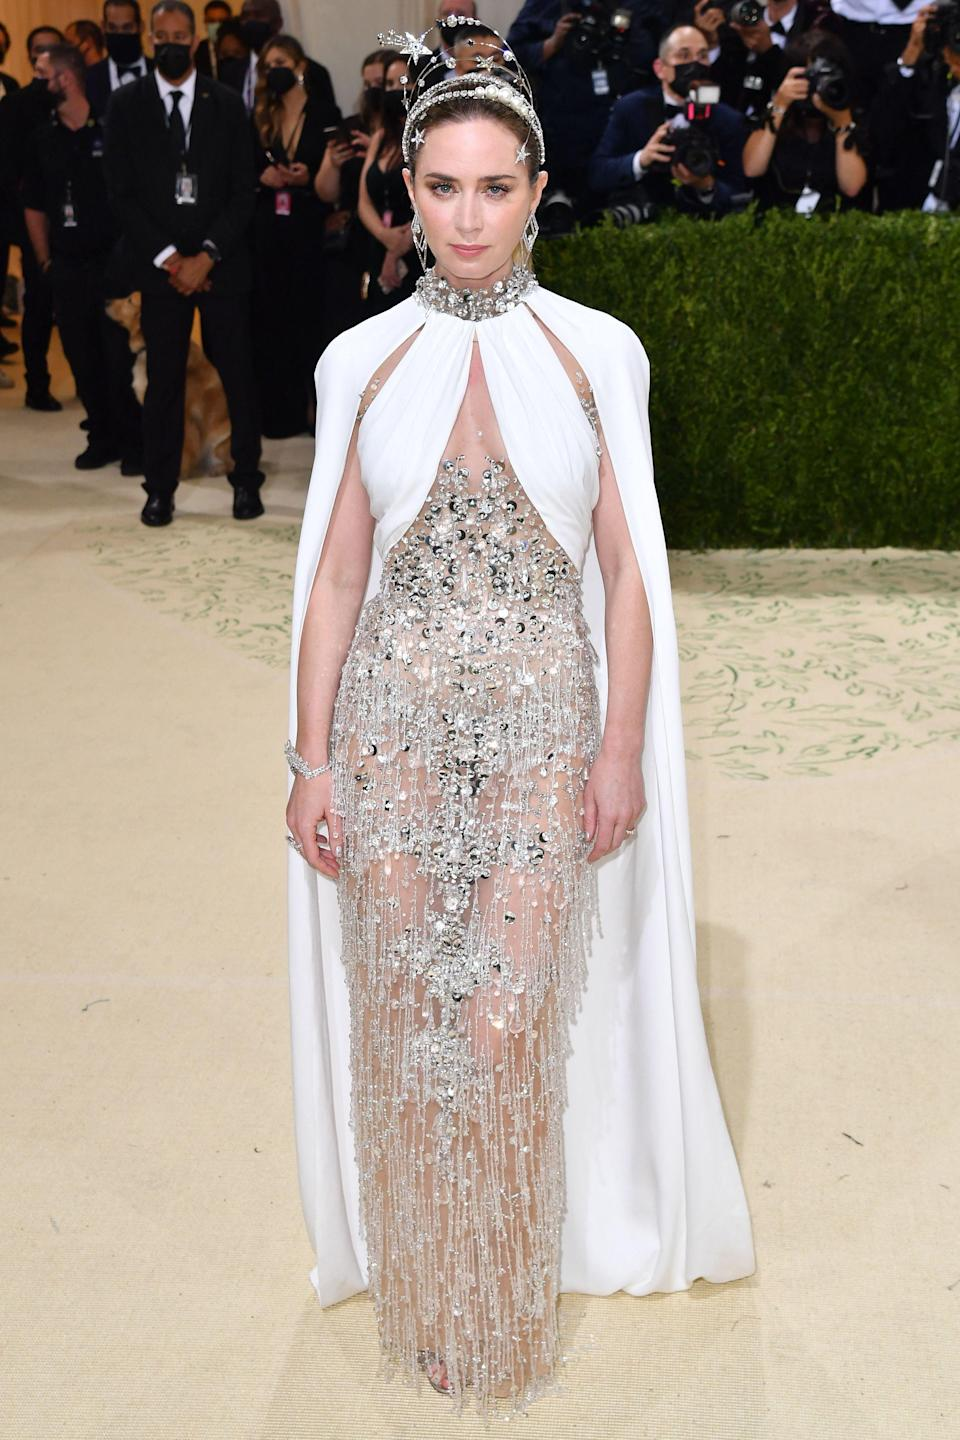 """<p>The Met Gala 2021 was back to bring us some of our favourite stars adorned in unique, show-stopping looks that encapsulated this year's theme of """"In America: A Lexicon of Fashion"""" - with many being inspired by US independence. </p><p>The world's biggest fashion event - usually held on the first Monday in May but postponed this year due to the pandemic - was co-chaired by Billie Eilish, tennis professional Naomi Osaka, Hollywood star Timothée Chalamet and poet Amanda Gorman. The gala was raising funds for the Metropolitan Museum of Art's Costume Institute and marked the opening of the institute's major annual exhibition. </p><p>Arriving in style at the New York fashion extravaganza were Emily Blunt, Michaela Cole, legendary supermodel Iman, Vigil's Rose Leslie, Carey Mulligan, Gemma Chan, tennis champion Emma Raducanu and Big Little Lies star Zoe Kravitz, to name but a few.</p><p>Here are some of our favourite looks from last night... </p>"""